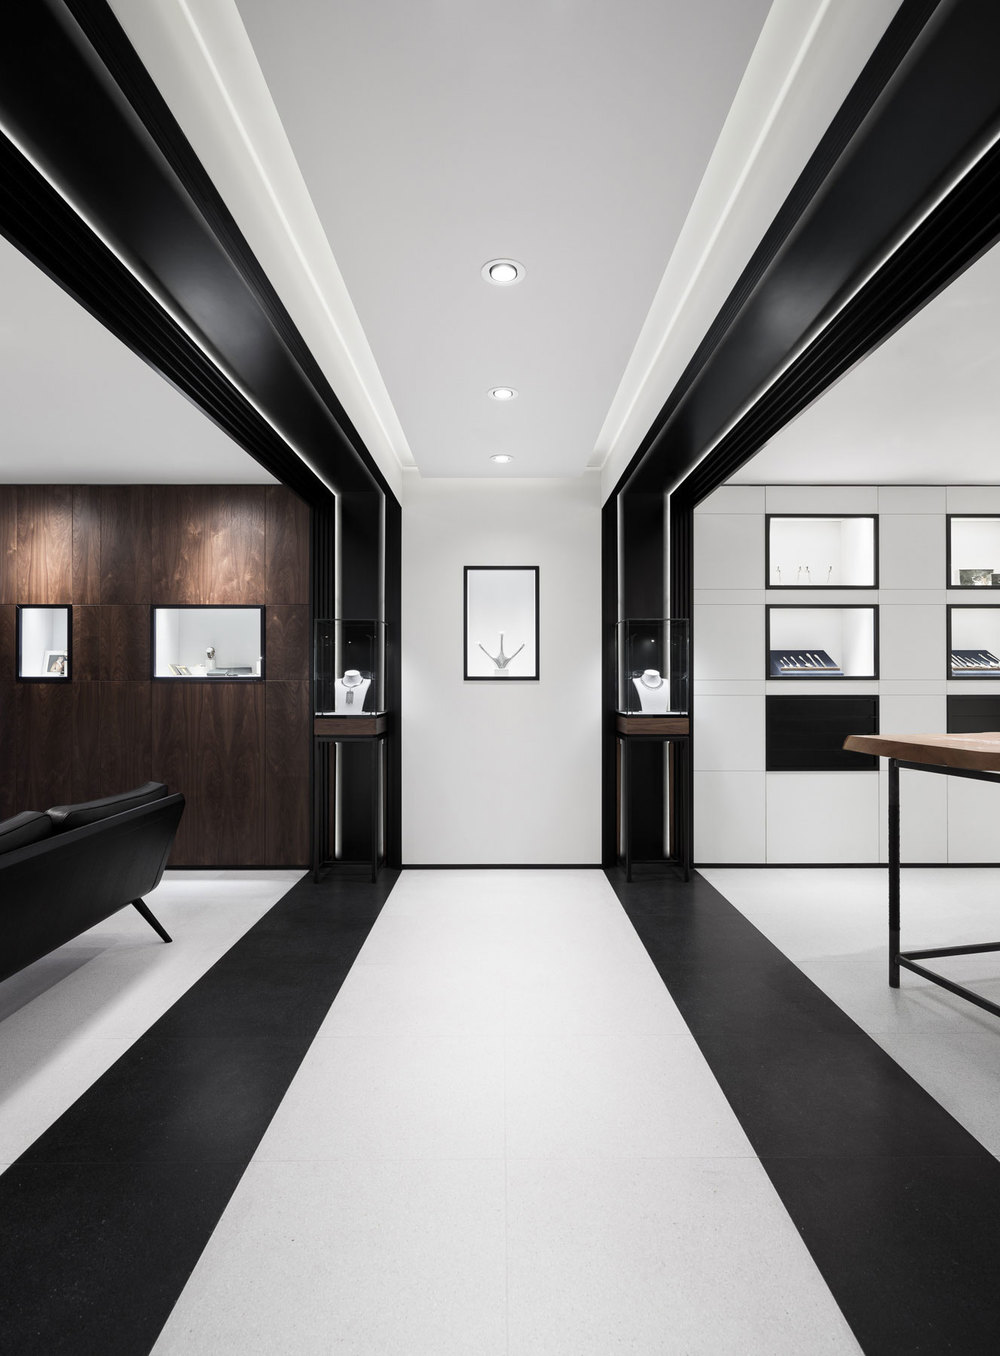 David thulstrup designs symmetrical space for georg jensen for 4 space interior design